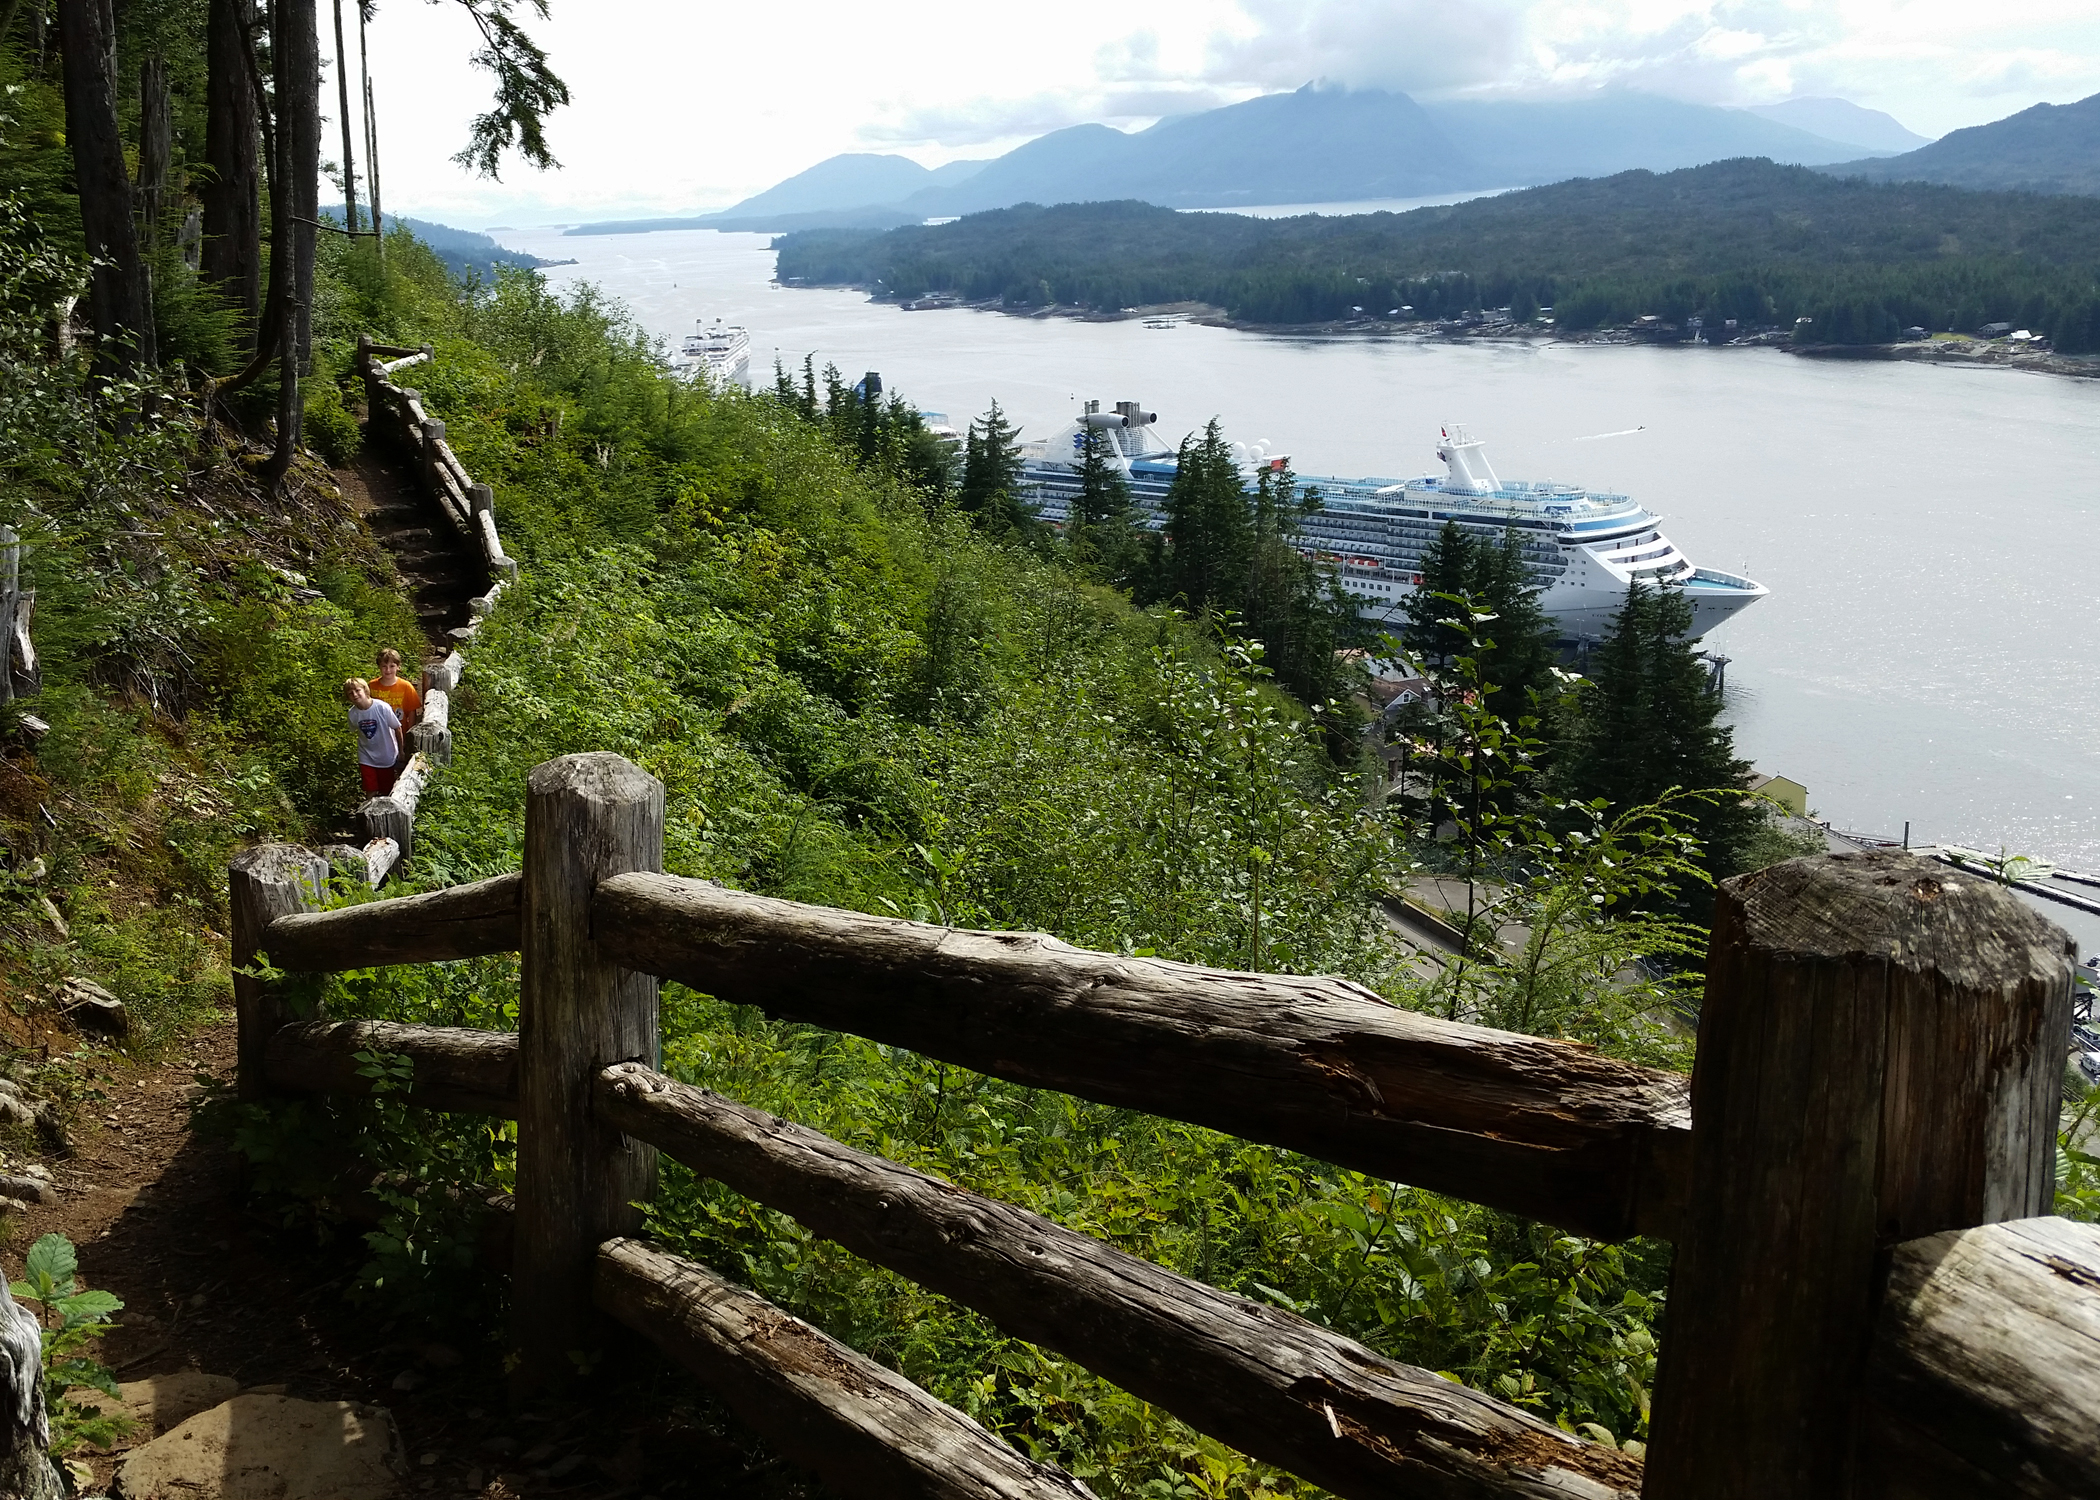 Hiking the Rainbird Trail above Ketchikan, Alaska.